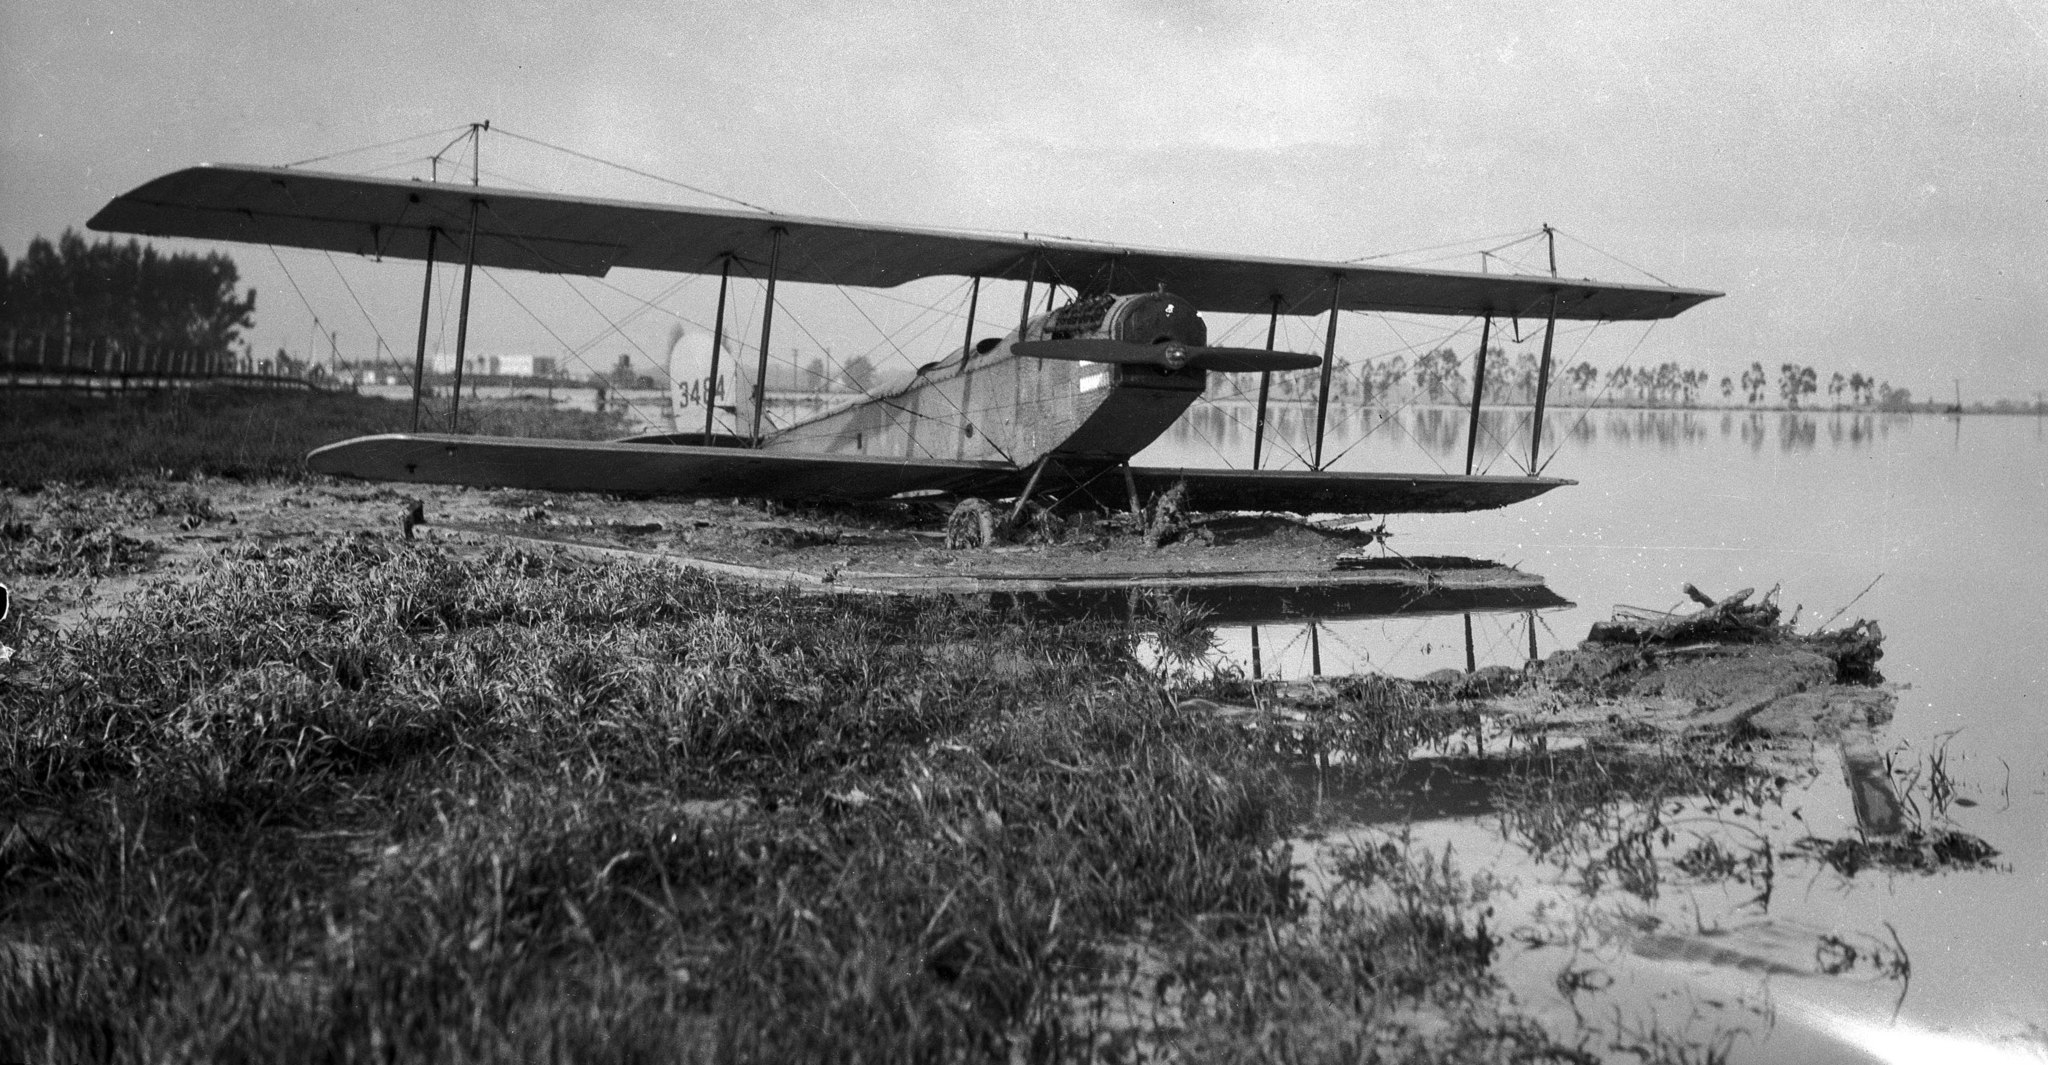 March 1928: View of a Curtiss JN-4